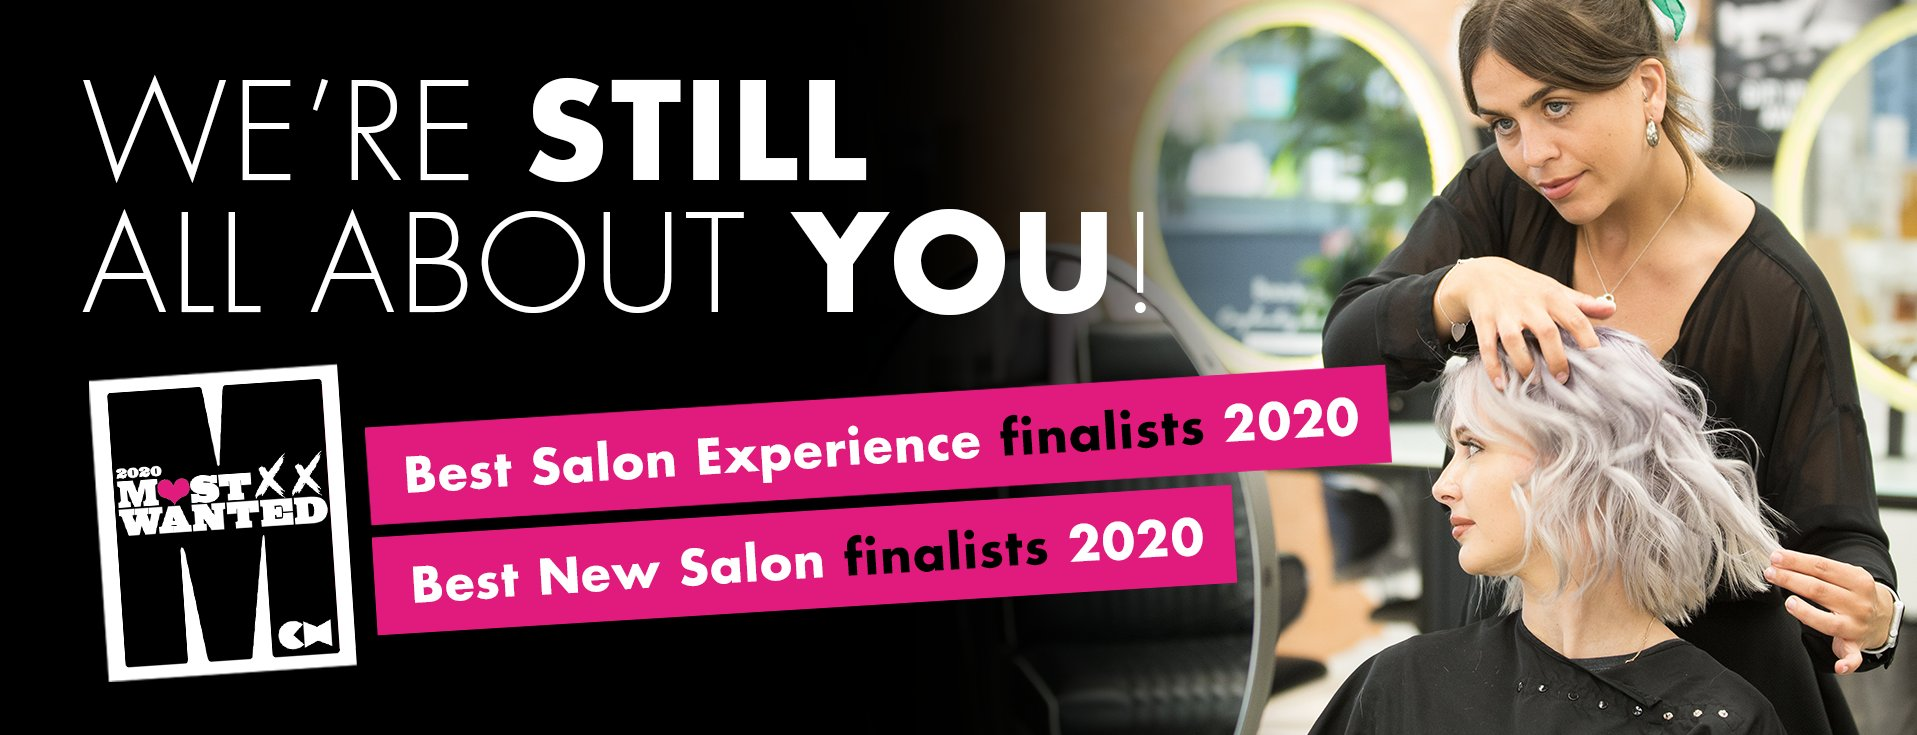 AWard winning GAtsby & Miller Hair Salon in Amersham, Buckinghamshire